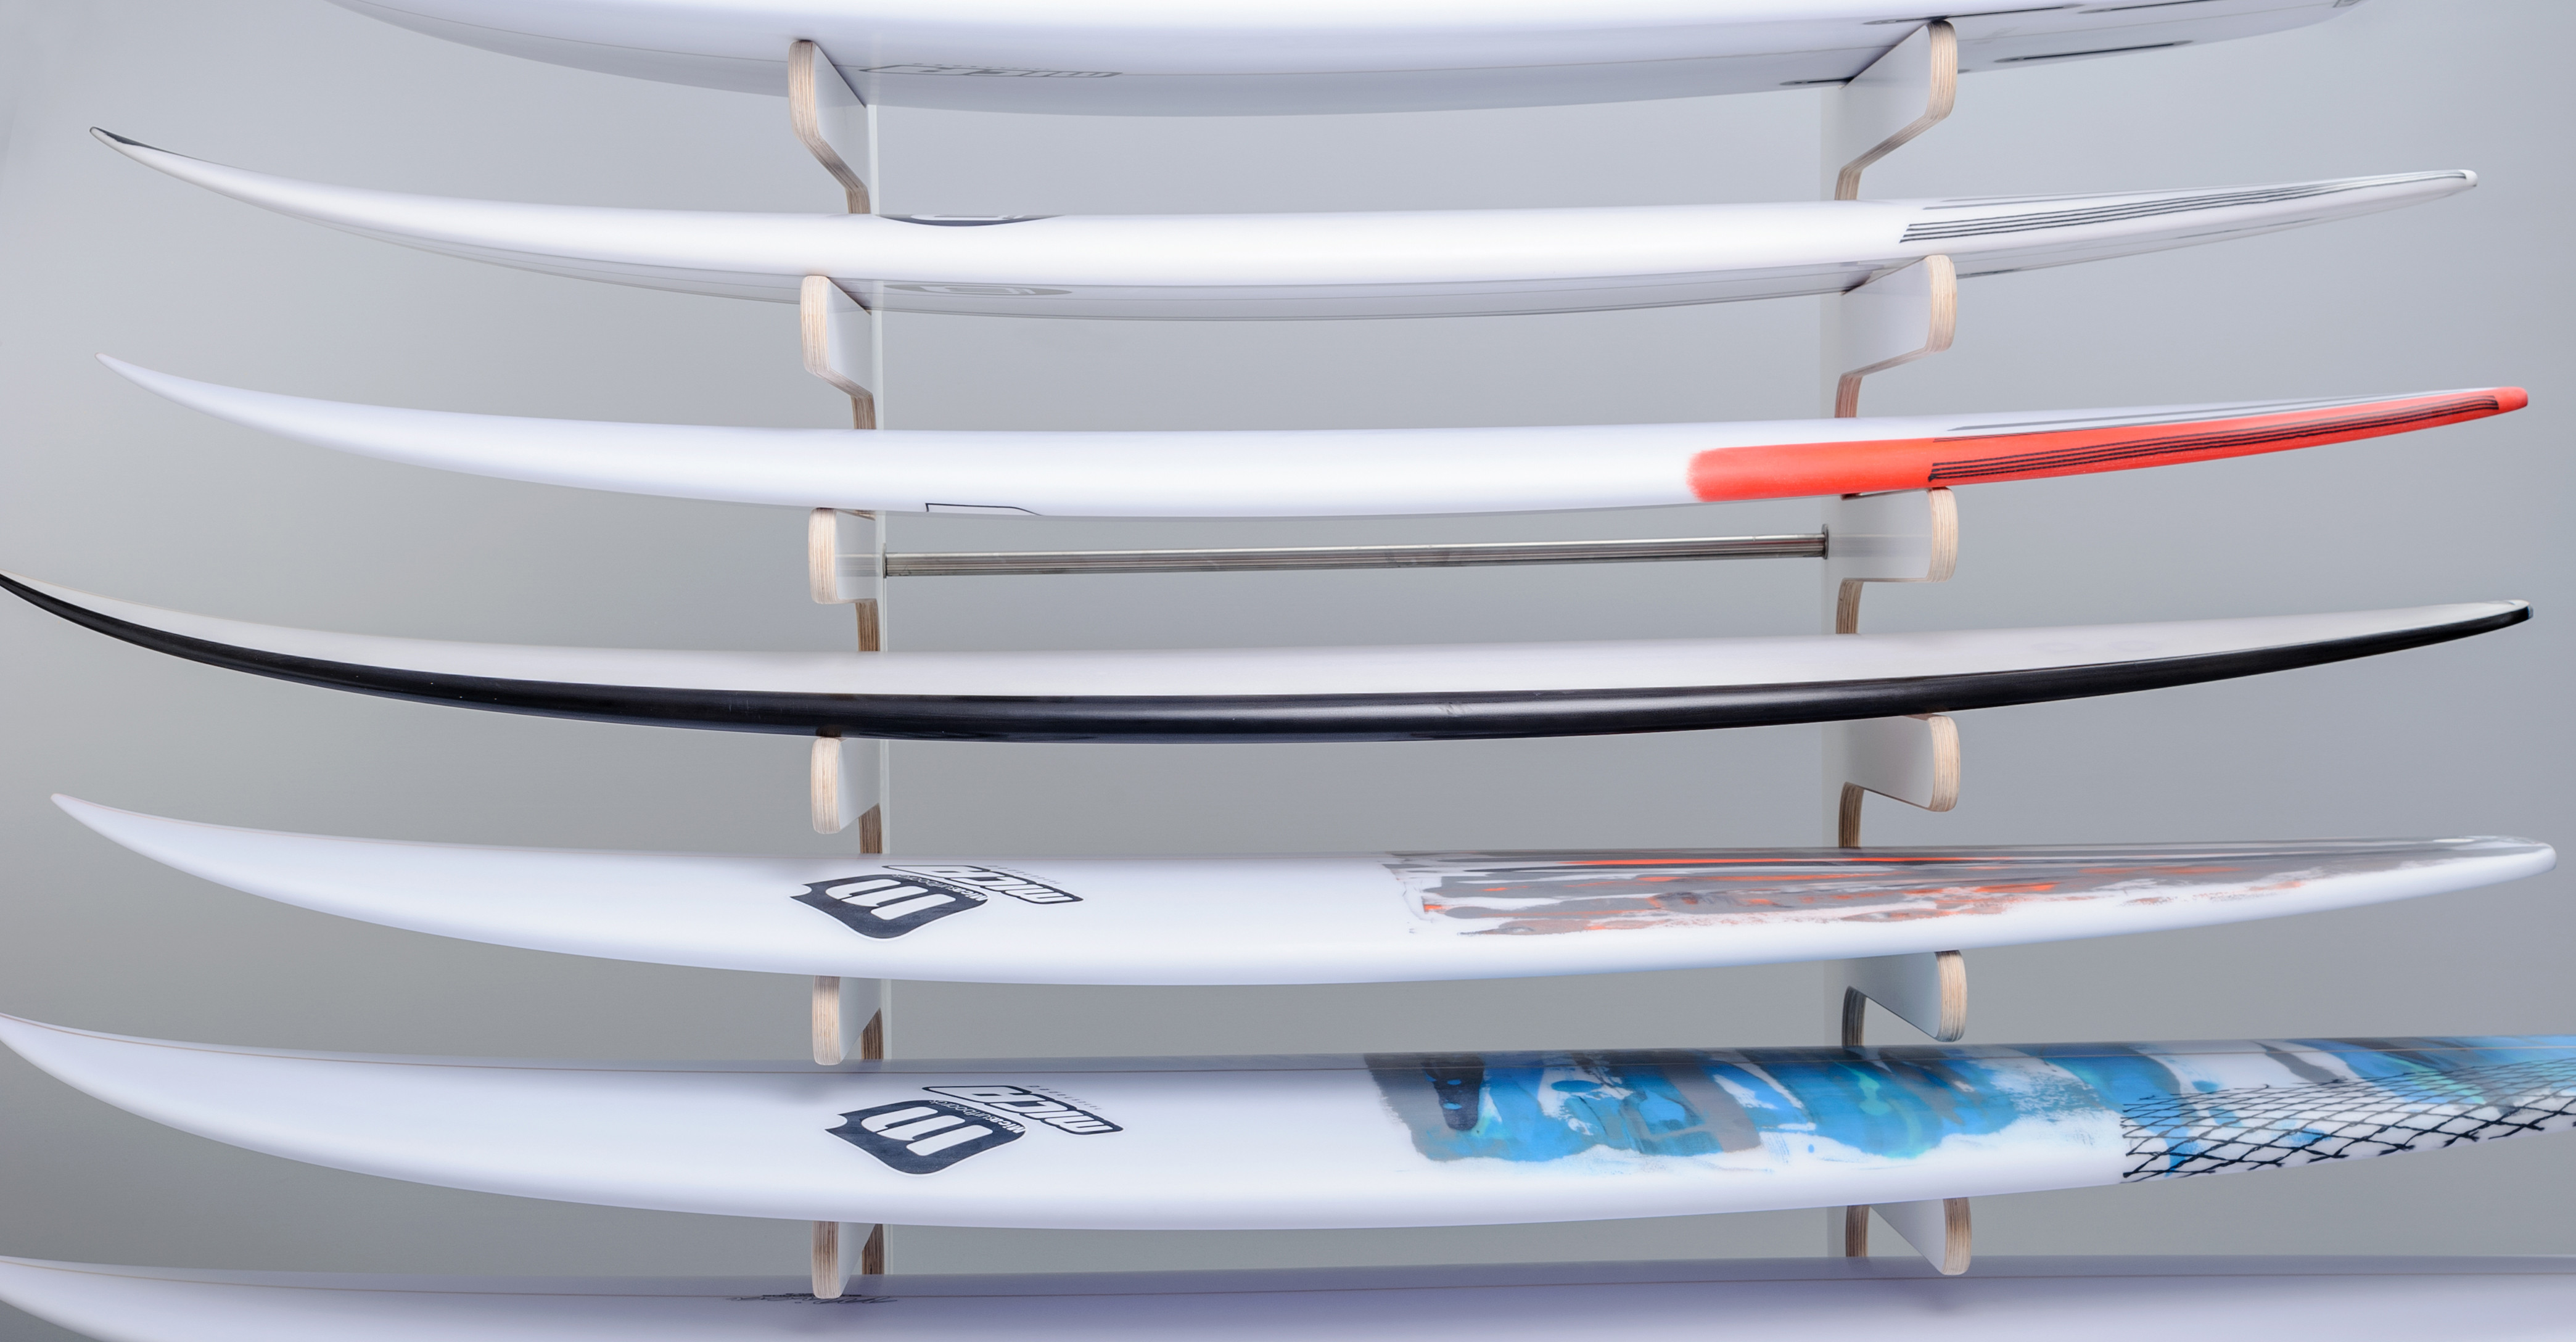 Micasurfboards in Pica Racks